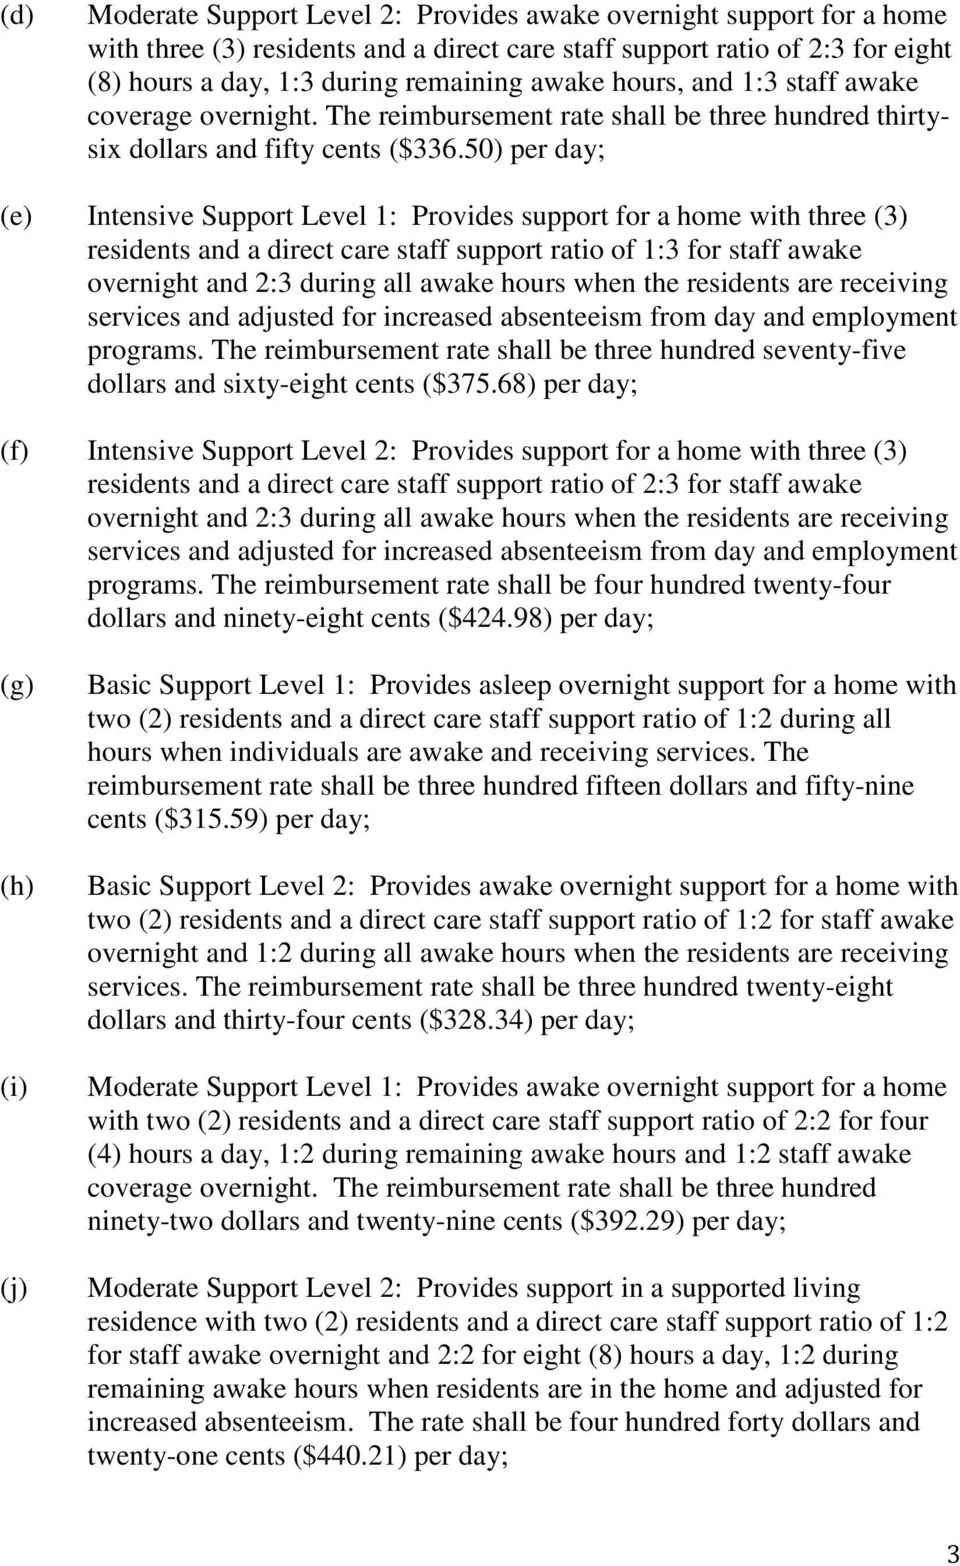 50) per day; (e) Intensive Support Level 1: Provides support for a home with three (3) residents and a direct care staff support ratio of 1:3 for staff awake overnight and 2:3 during all awake hours